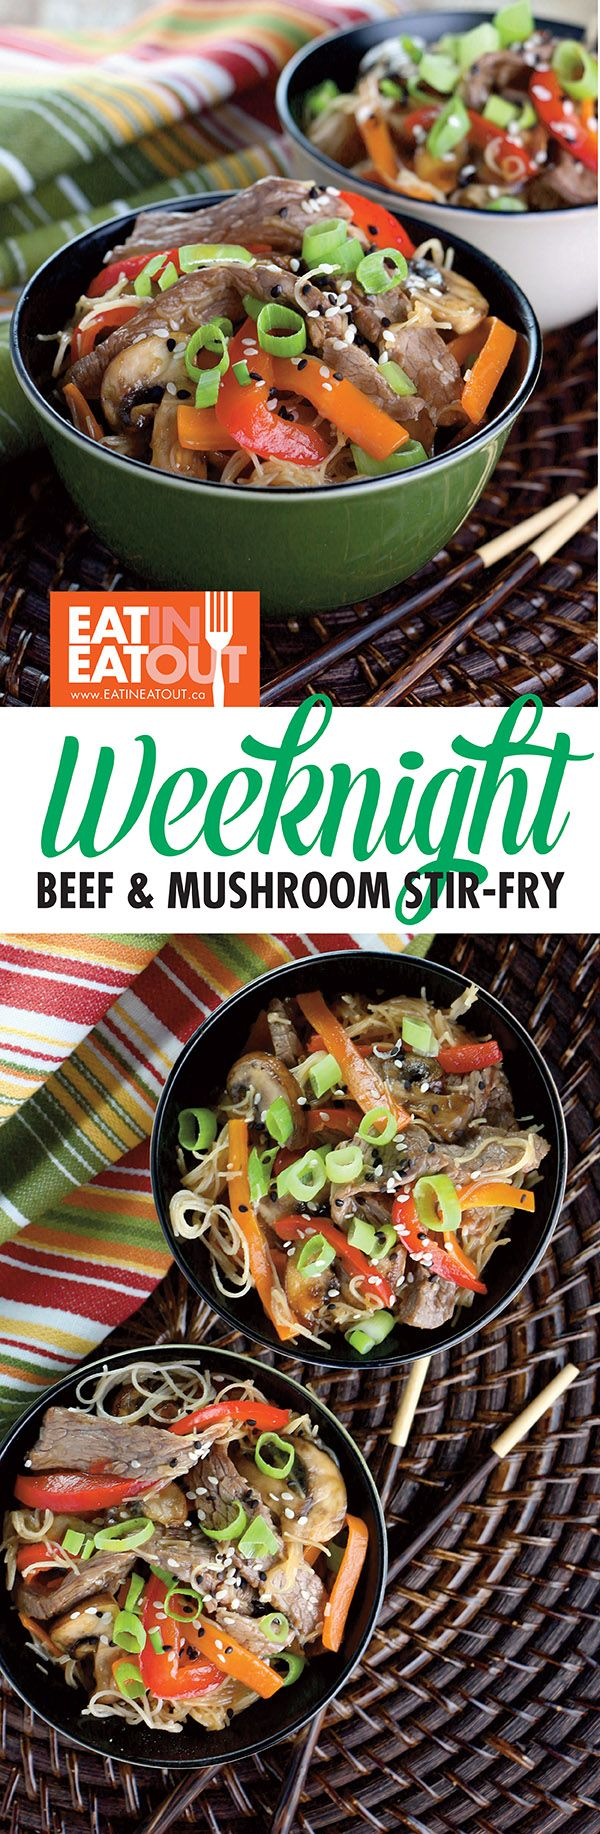 Beef & Mushroom Stir-fry with Rice Noodles - Need a delicious good-for-you weeknight meal in 30 minutes? Done!